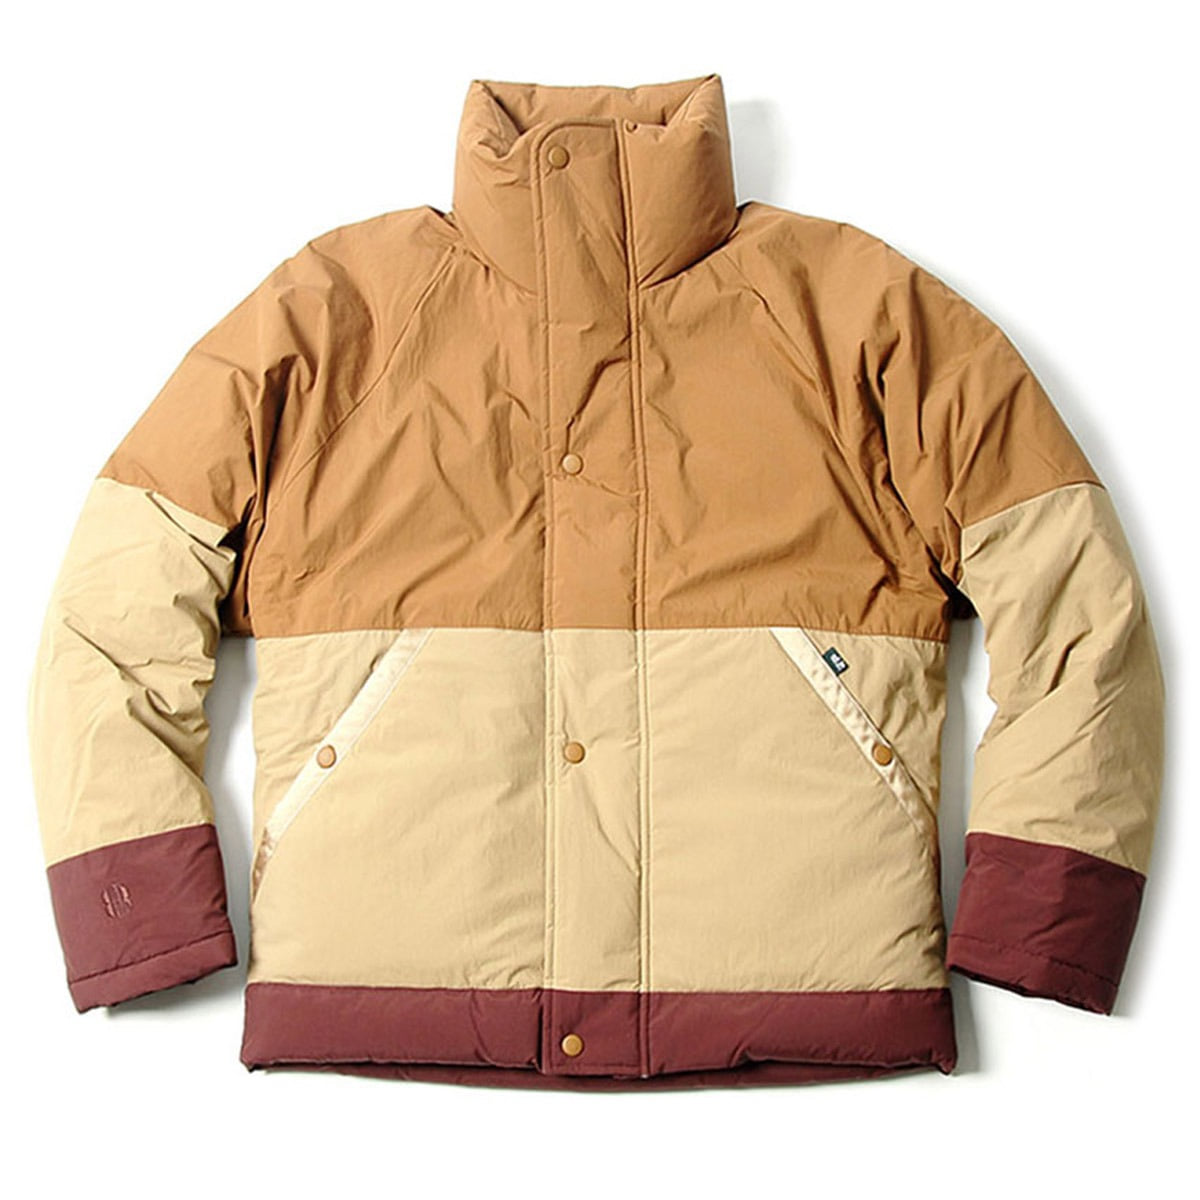 [BEHEAVYER] BHR POLAR BEAR Vol.2 'CAMEL'